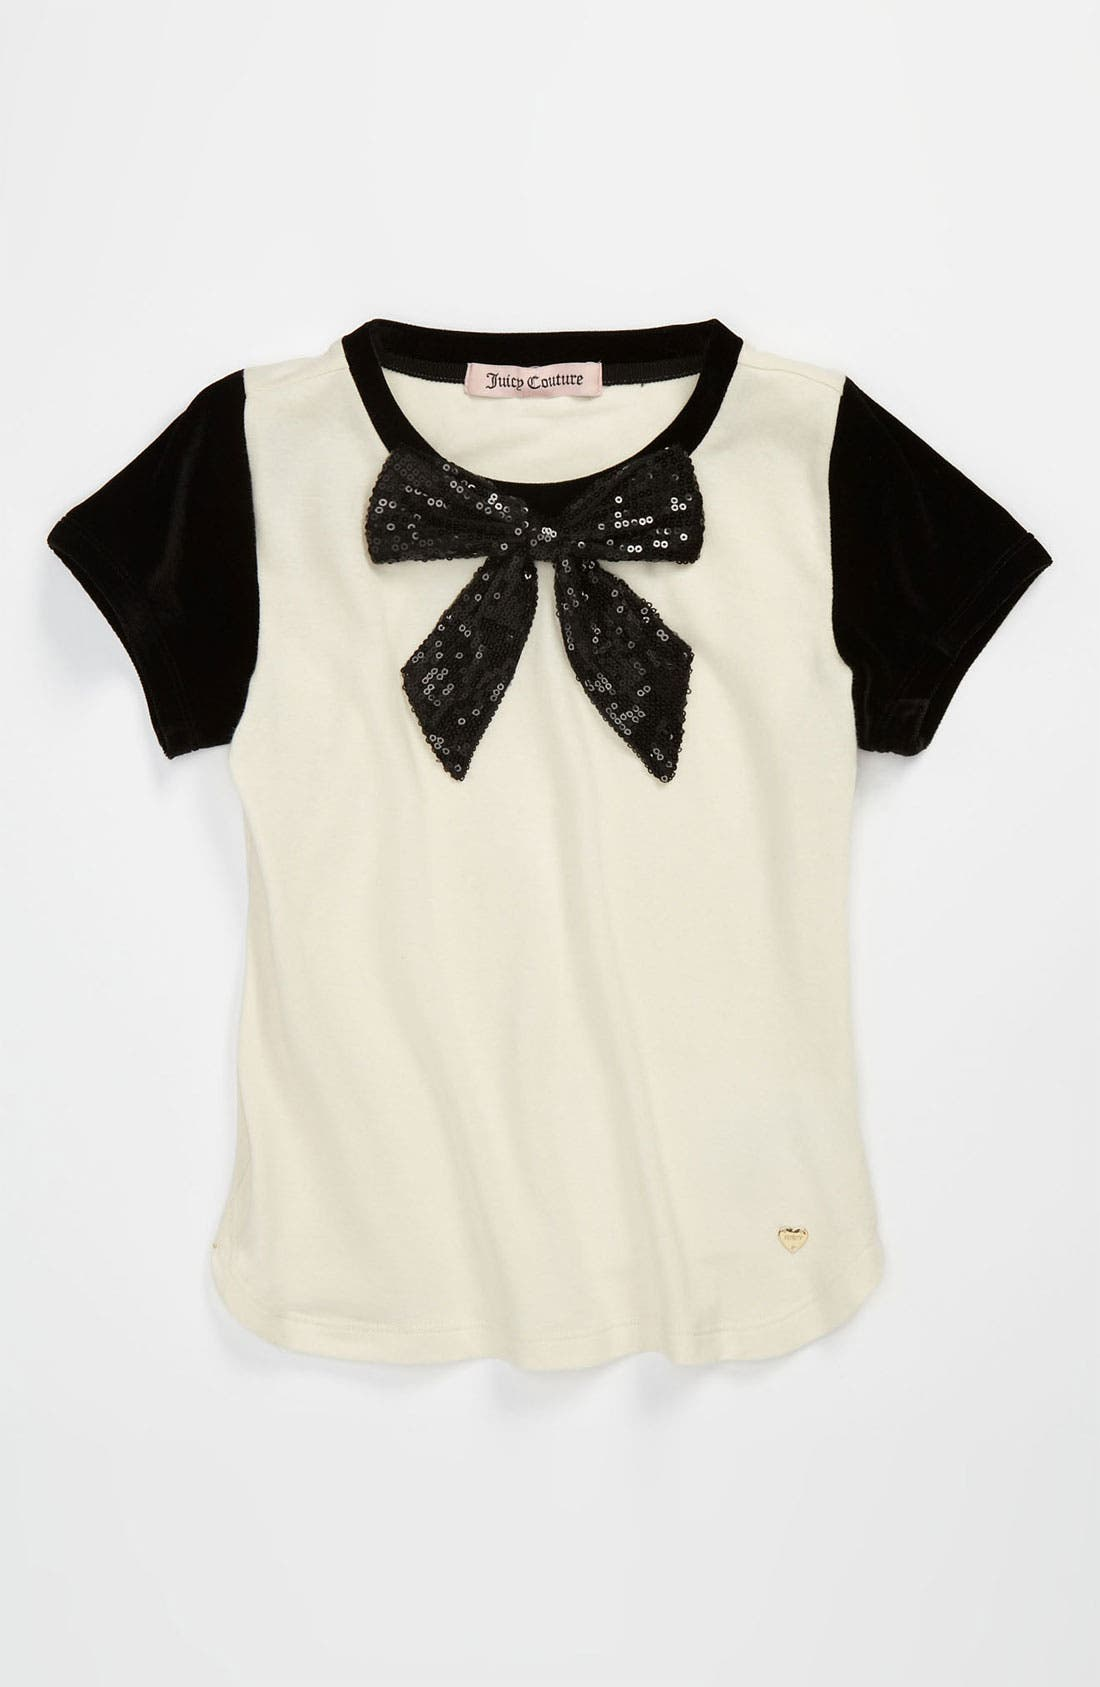 Main Image - Juicy Couture 'Fashion Bow' Top (Little Girls & Big Girls)